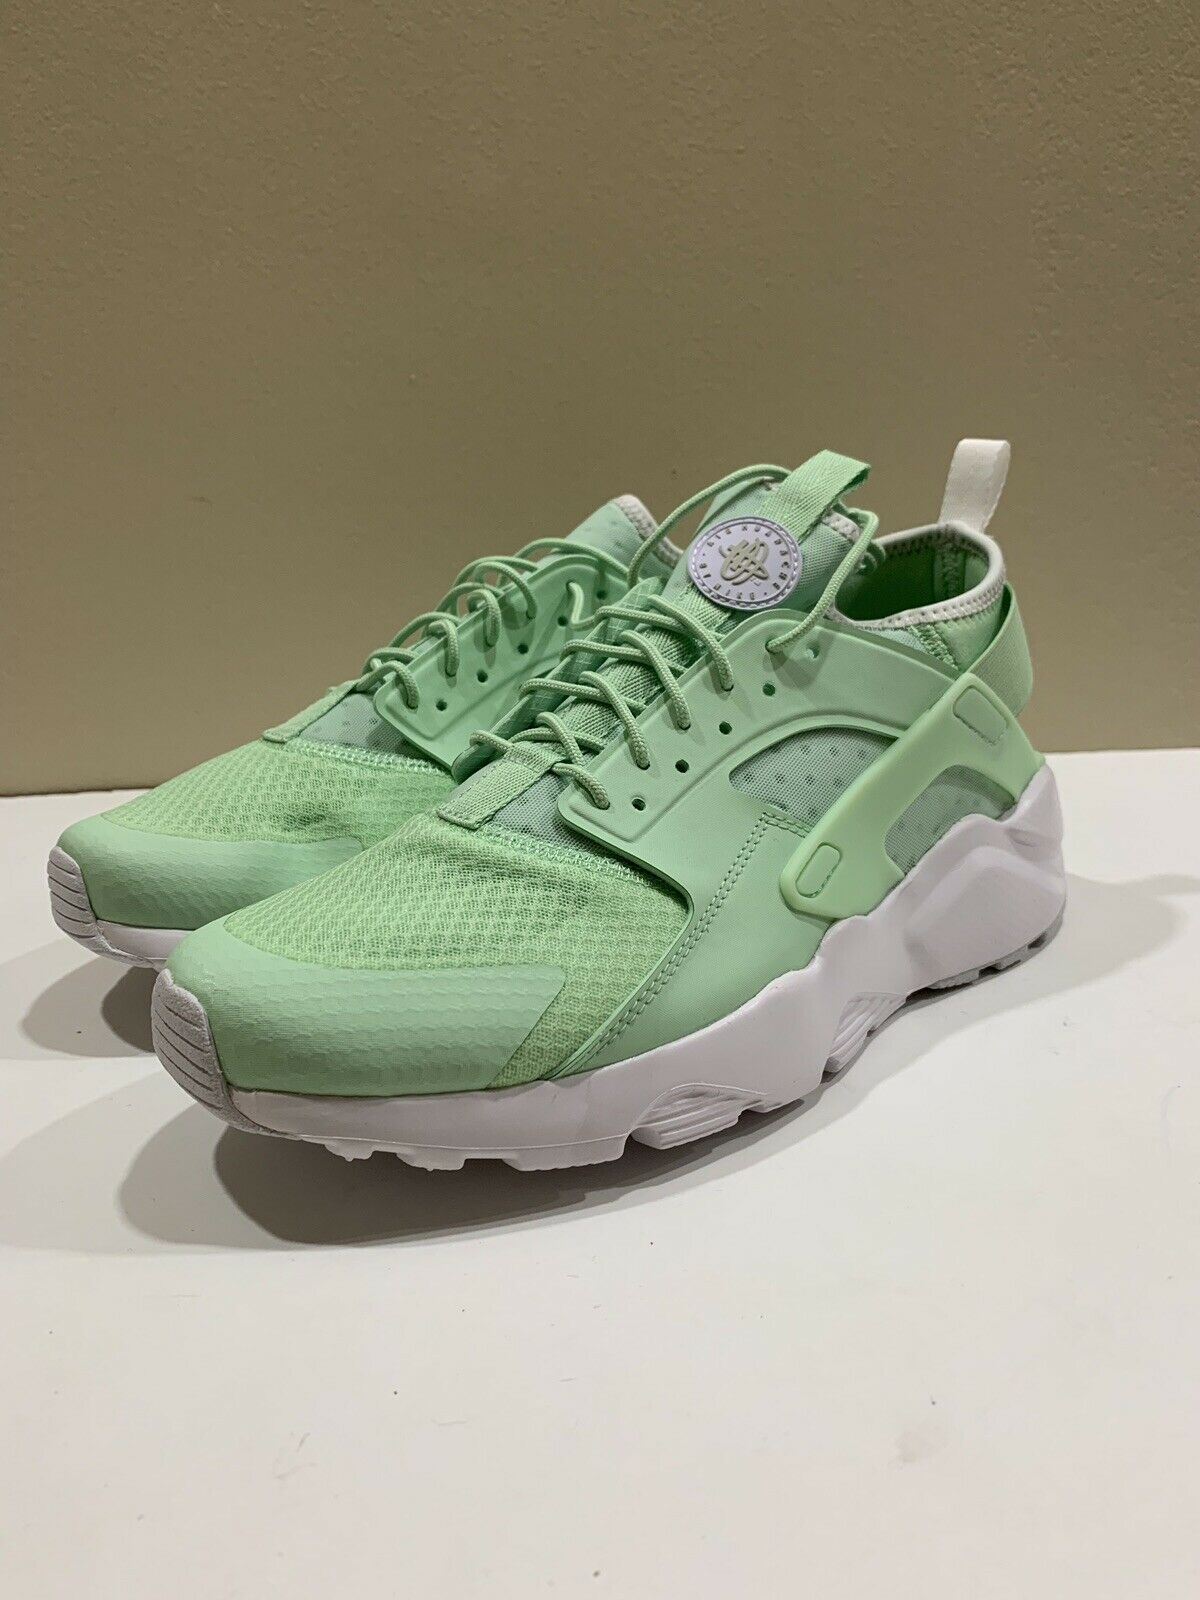 Nike Air Huarache Run Ultra Fresh Mint White Running shoes 819685-302 Mens Sz 10